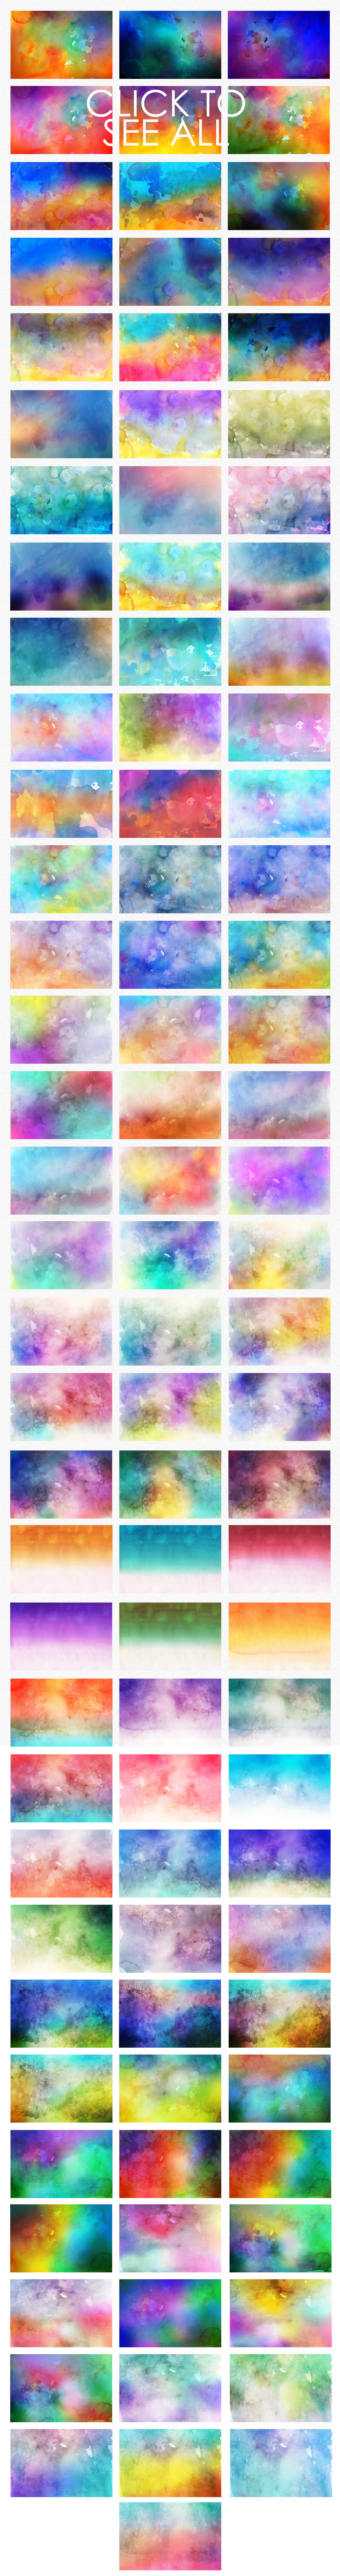 Only Watercolor Backgrounds Bundle example image 13